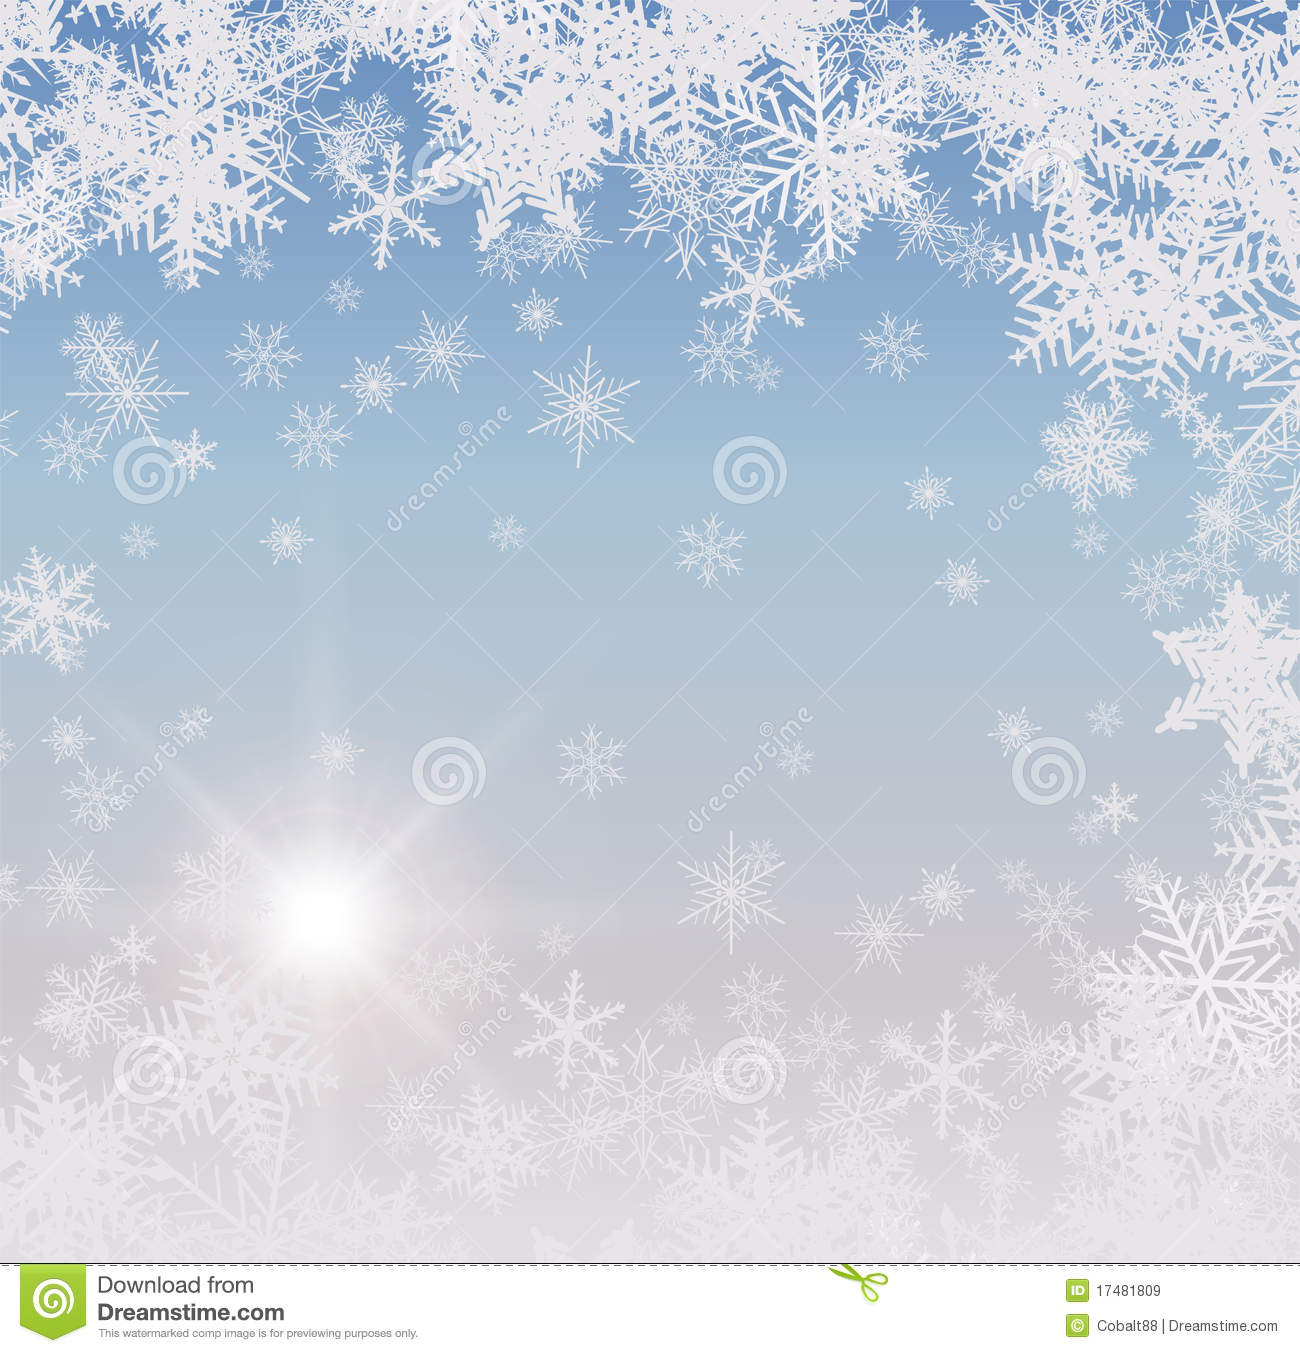 abstract winter background free - photo #19